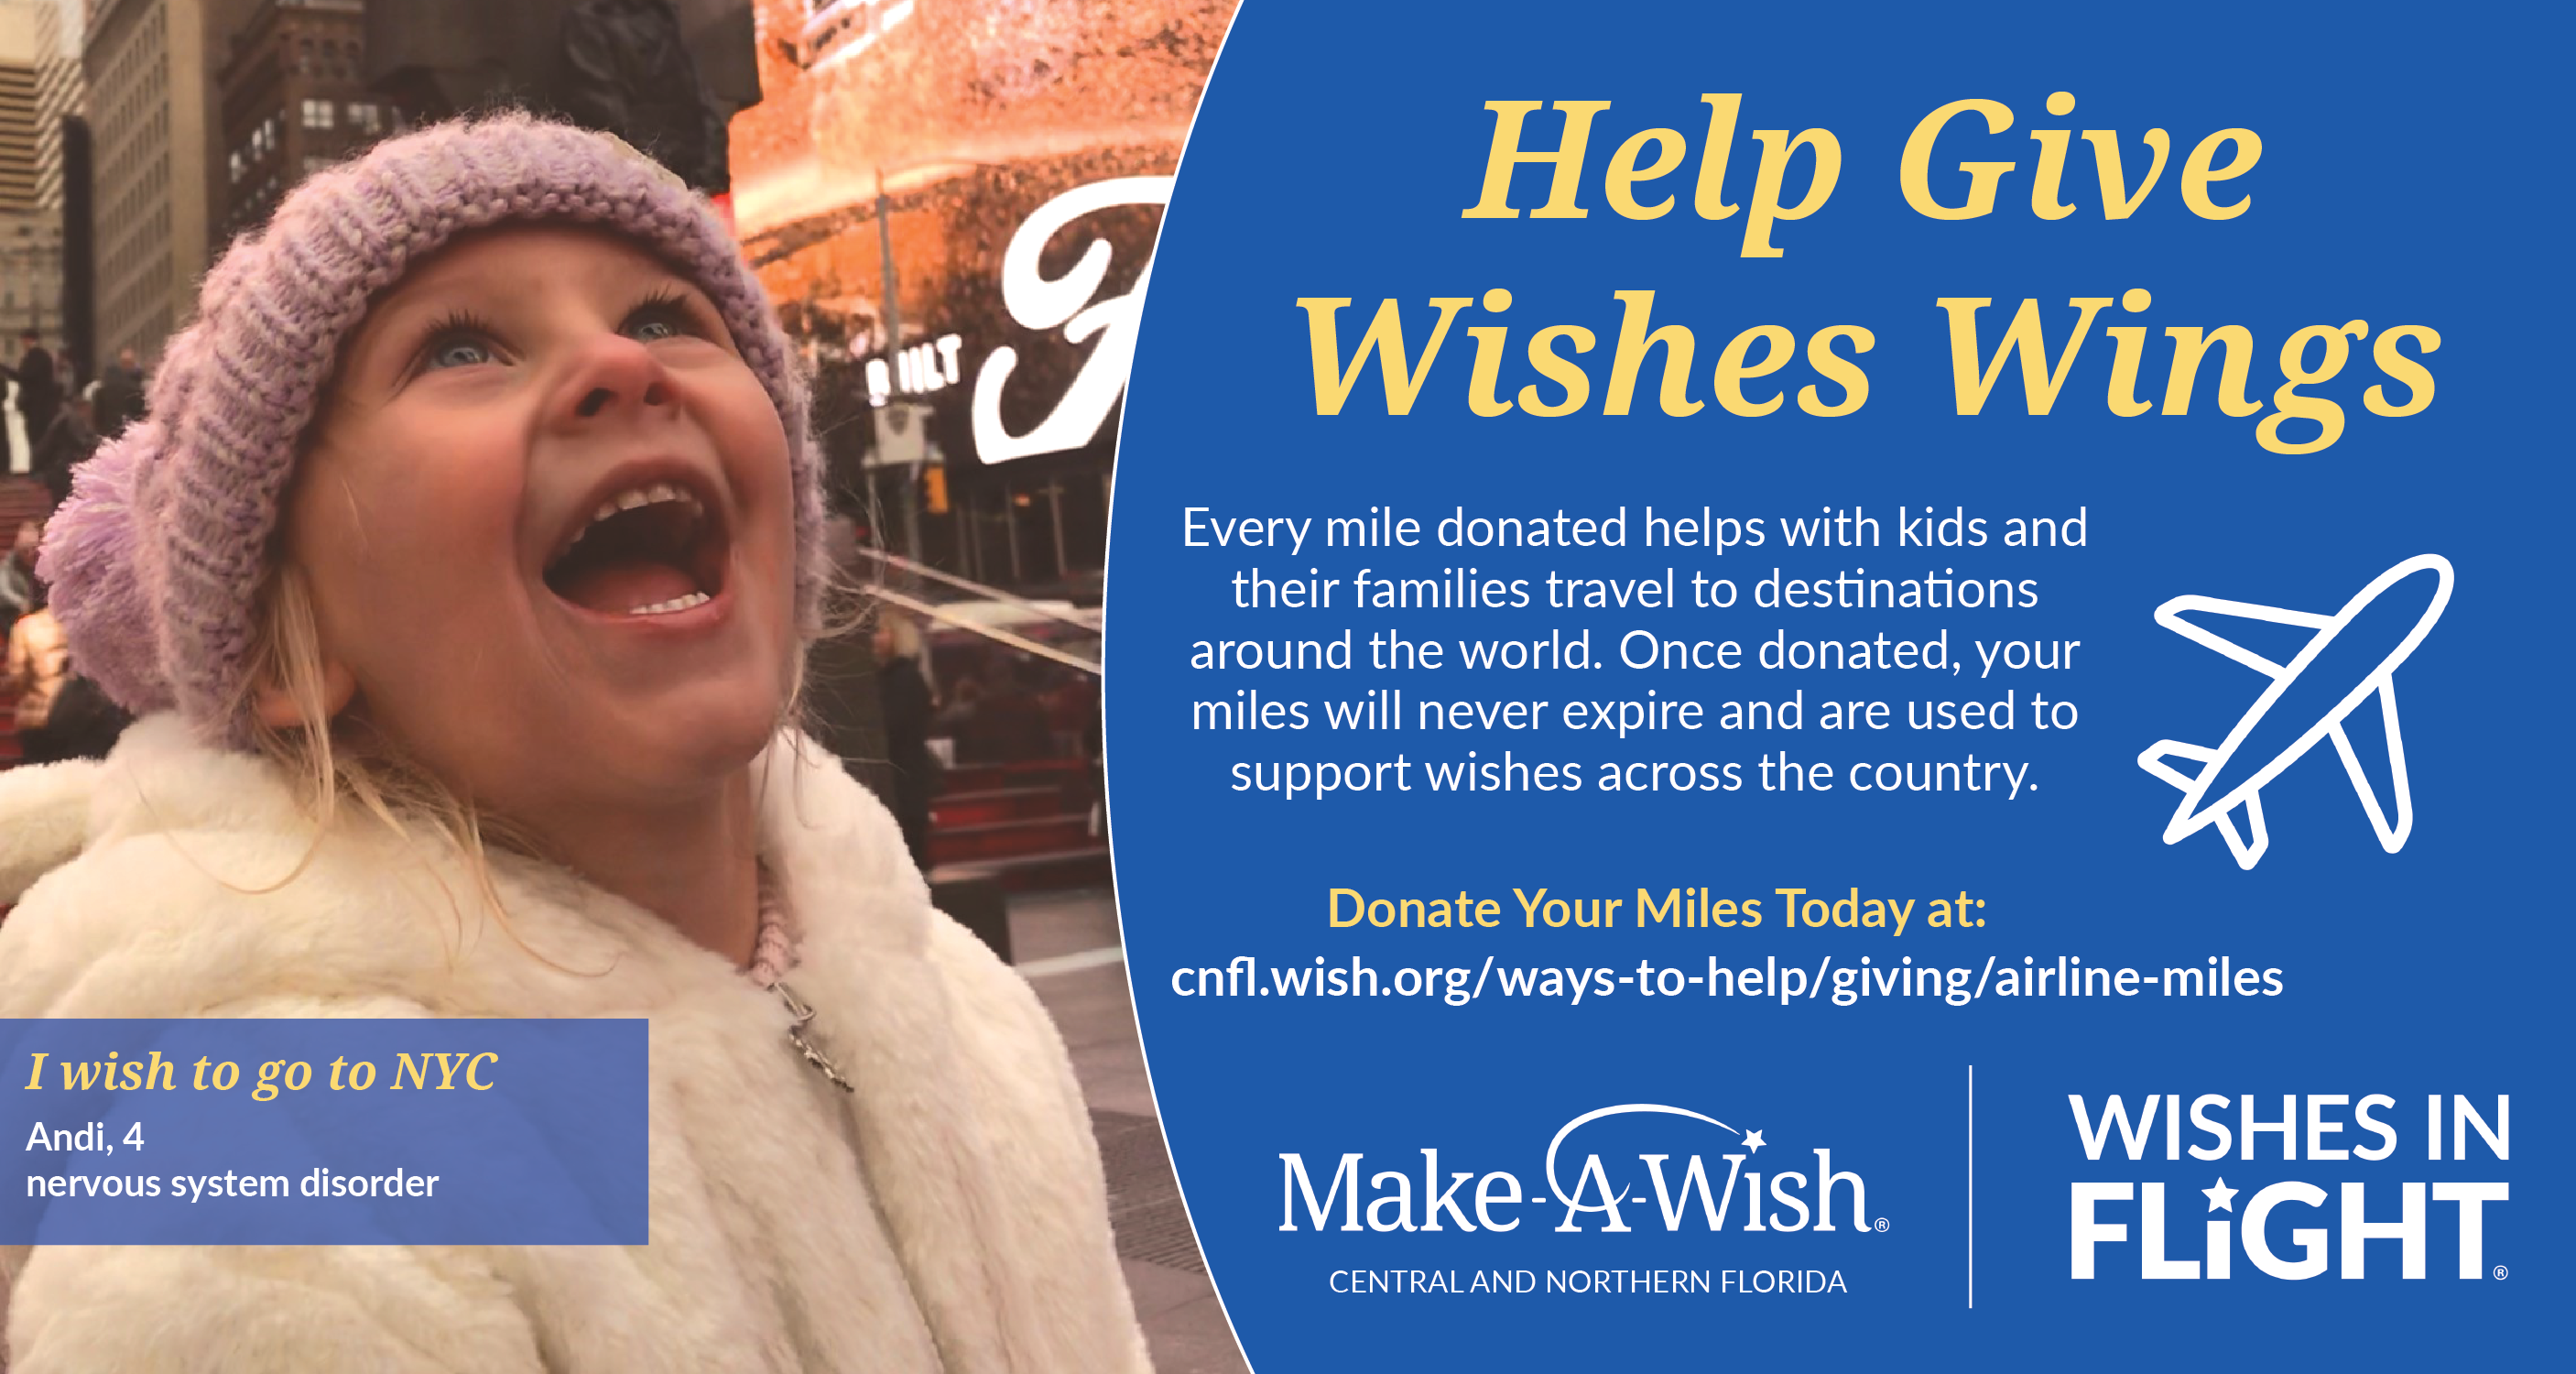 Make-A-Wish Central and Northern Florida Image